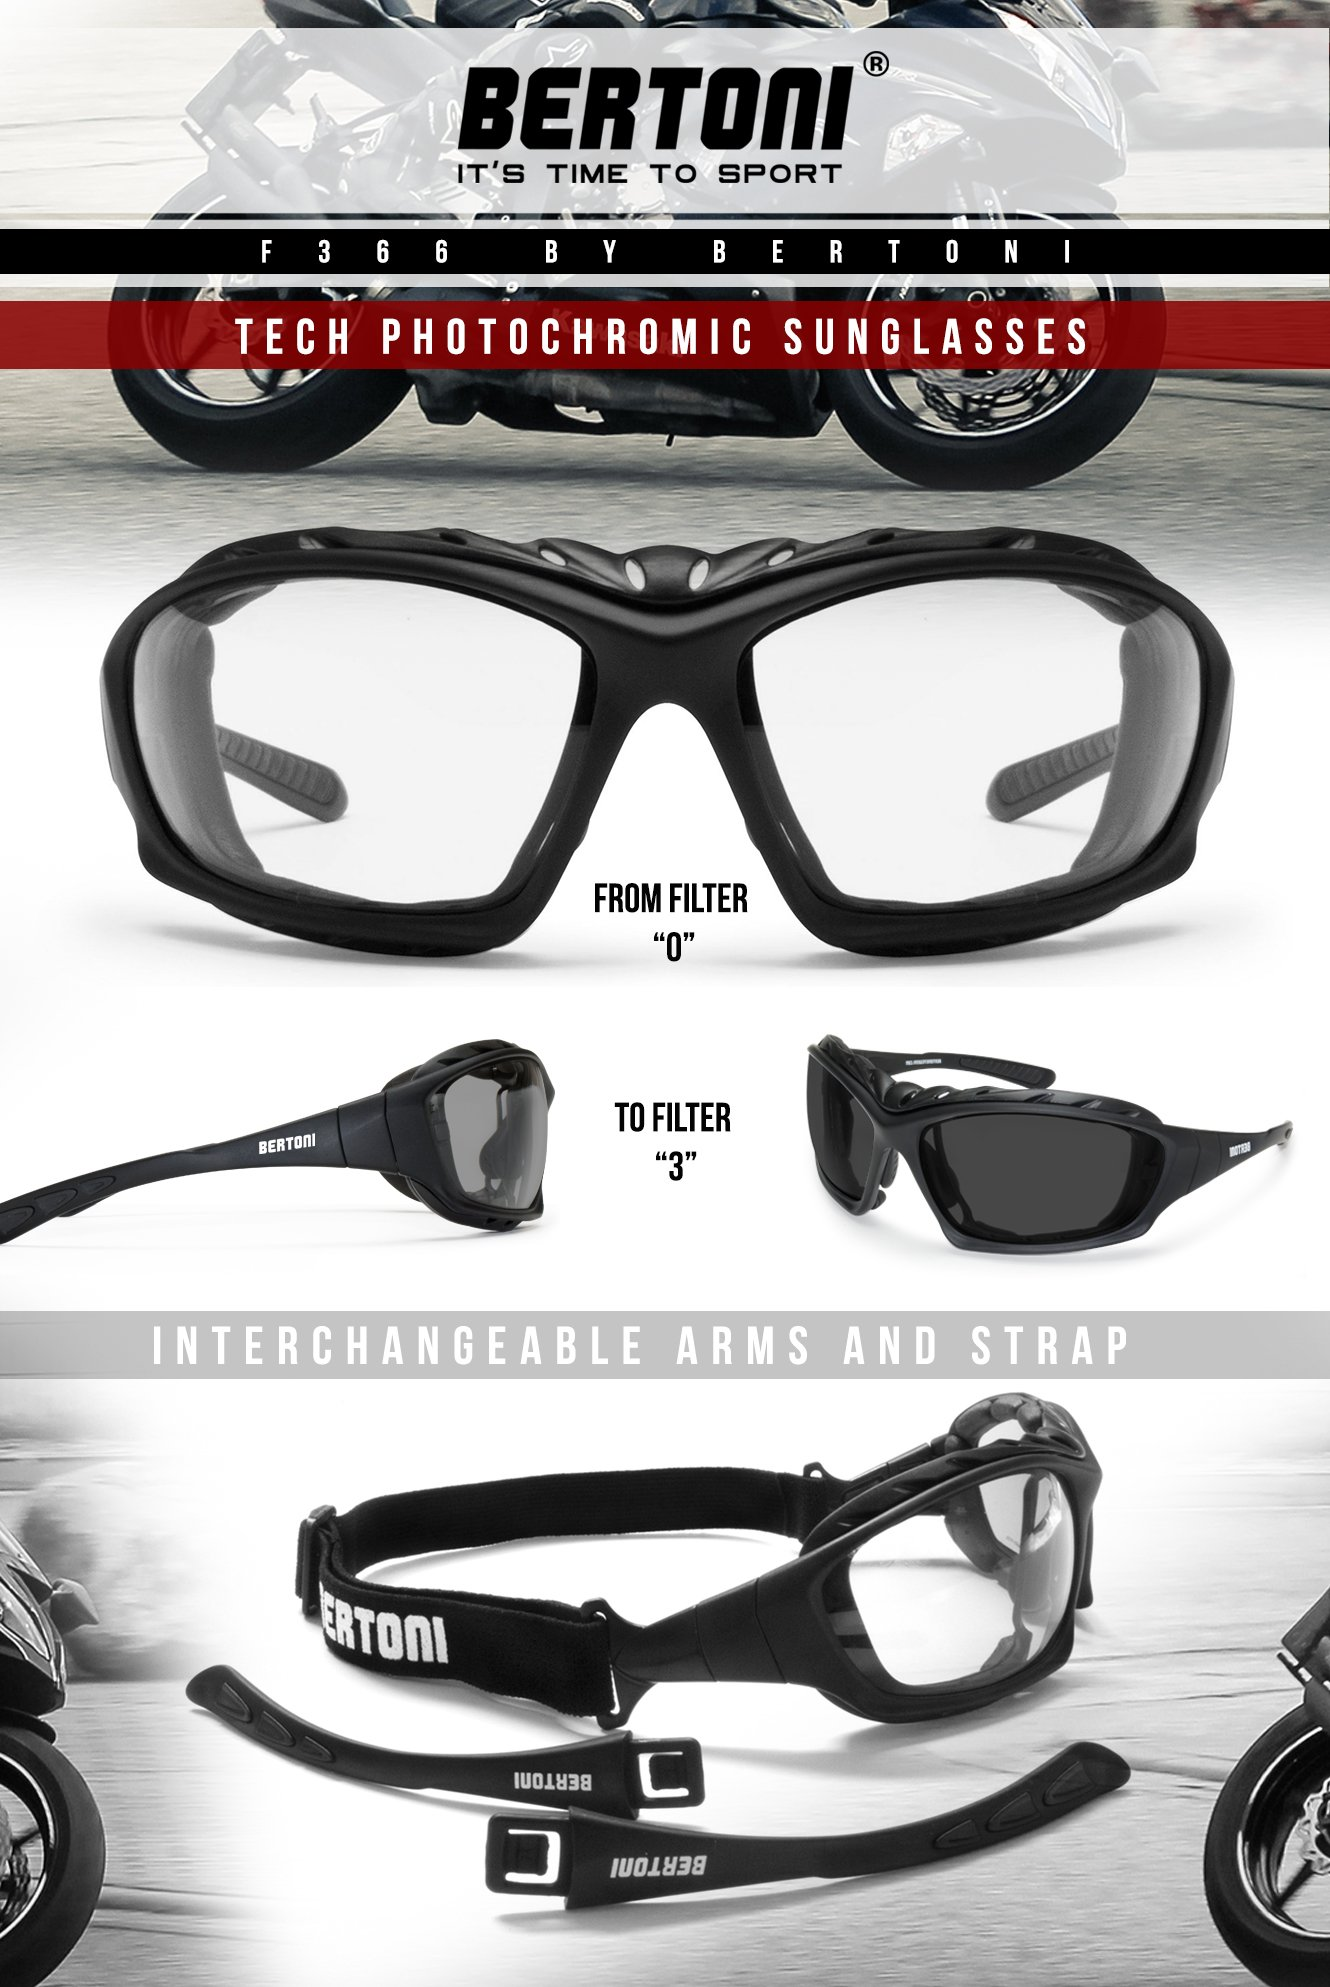 Bertoni Motorcycle Goggles Padded Sunglasses - Photochromic Antifog Lens - Removable Clip for Prescription Lenses - Interchangeable Arms and Strap - by Bertoni Italy F366A Motorbike Bikers Glasses by Bertoni (Image #6)